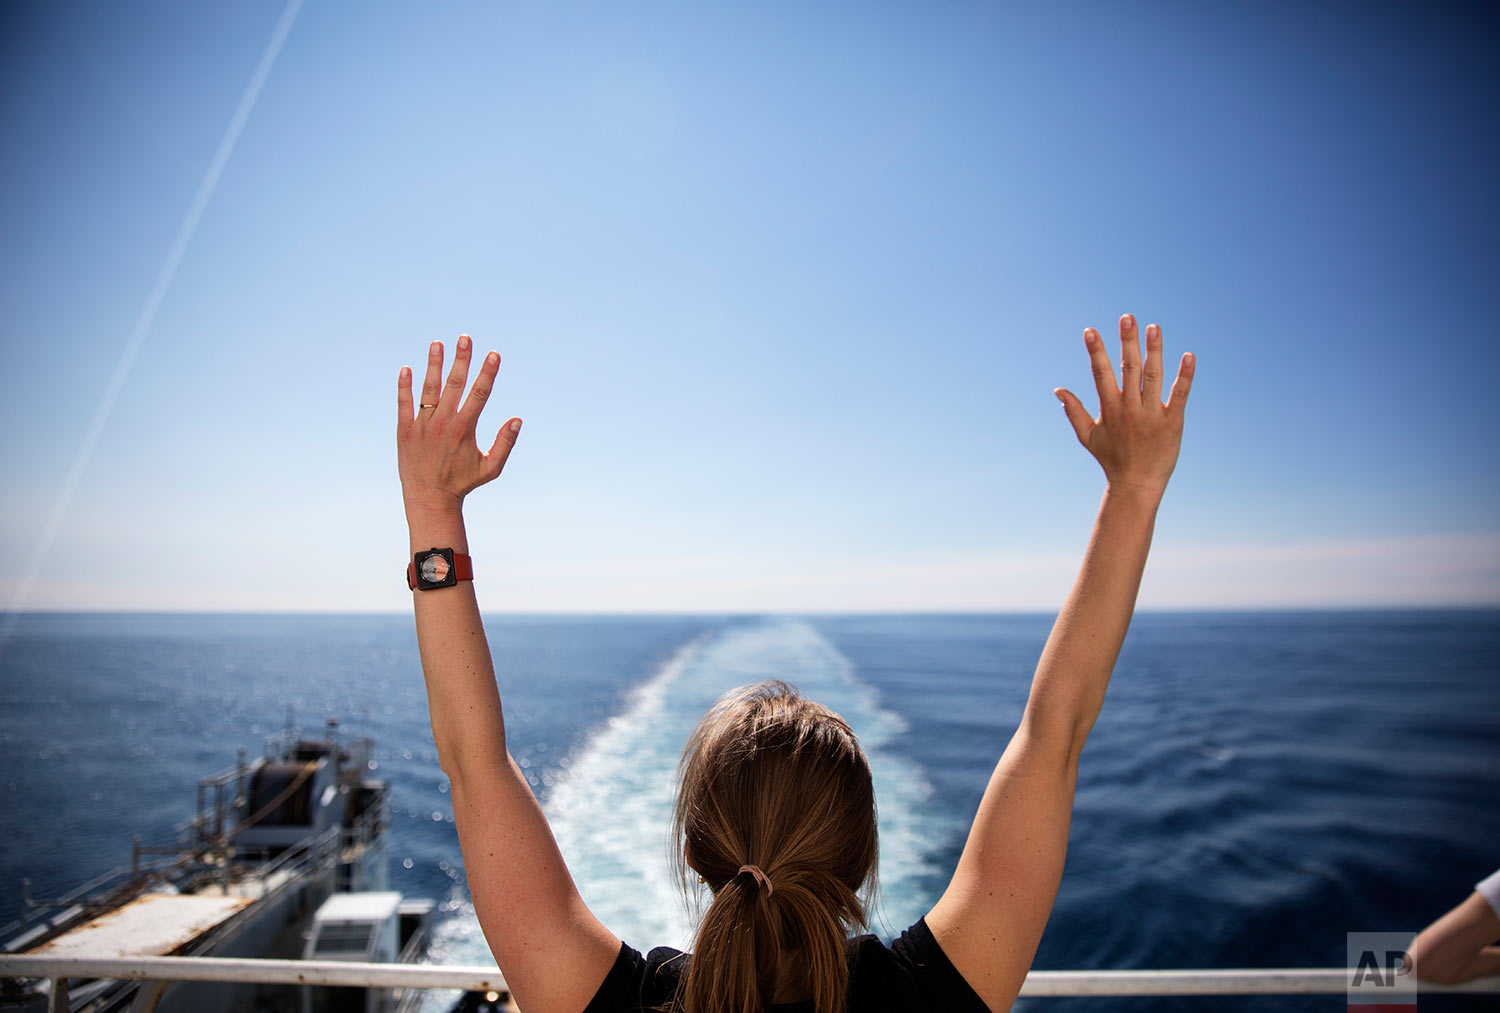 Daria Gritsenko stretches while doing yoga in the warm weather aboard the Finnish icebreaker MSV Nordica as it sails the Bering Sea to traverse the Northwest Passage through the Canadian Arctic Archipelago Thursday, July 13, 2017. As it made its way through the North Pacific, passing Chinese cargo ships, Alaskan fishing boats and the occasional far-off whale, members of the expedition soaked up the sun in anticipation of freezing weeks to come. (AP Photo/David Goldman)